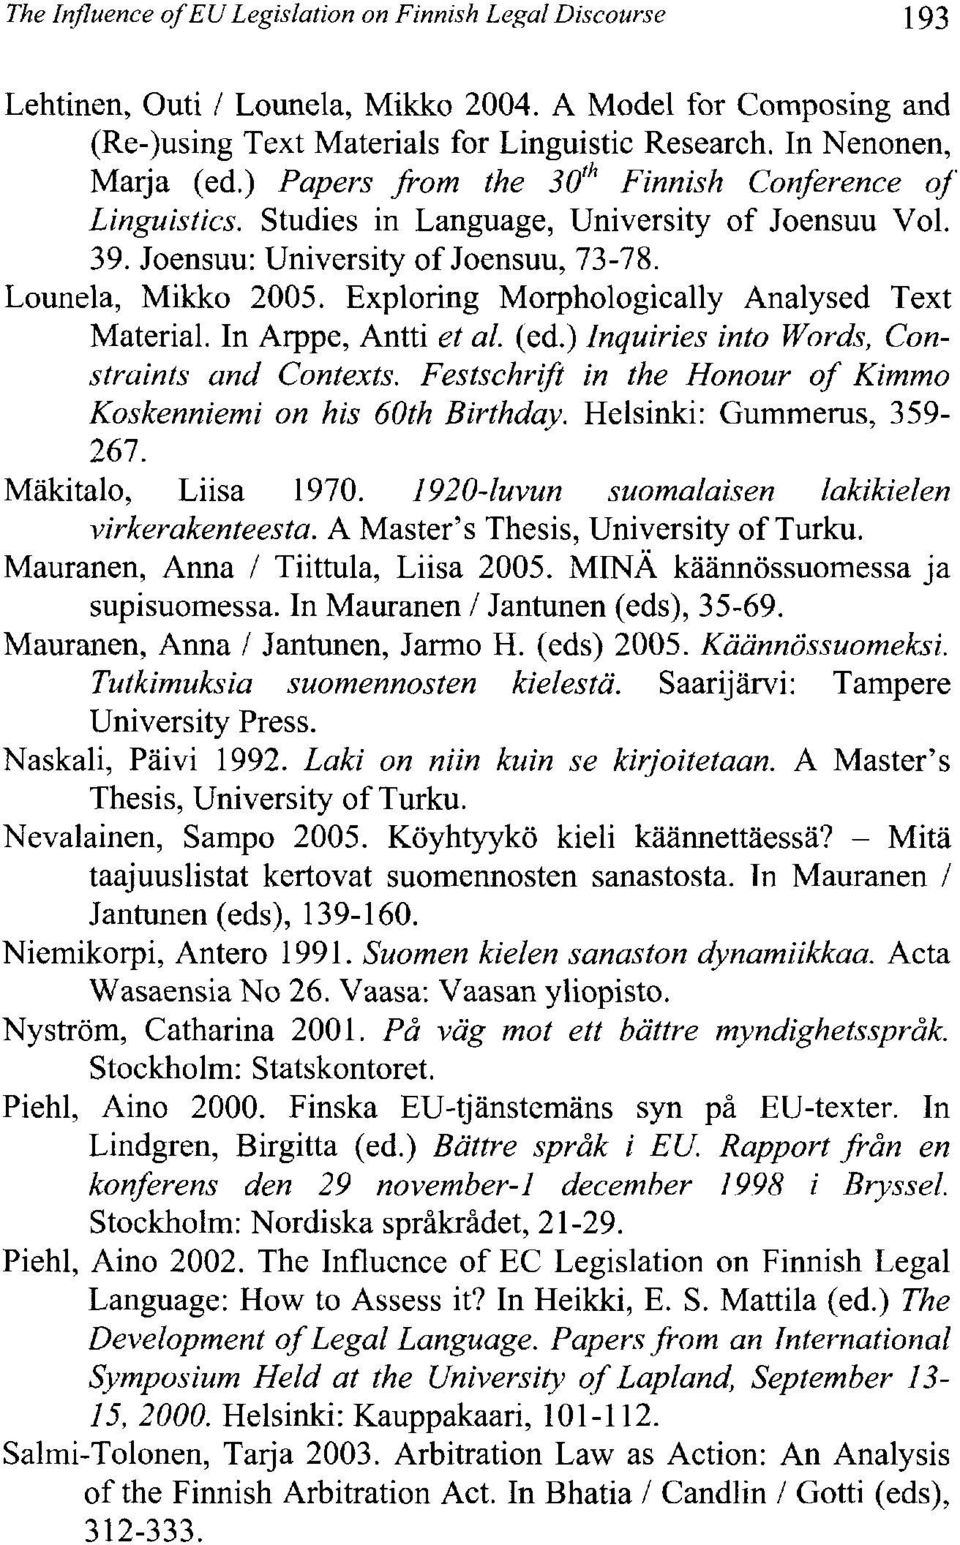 Exploring Morphologically Analysed Text MateriaI. In Arppe, Antti et al. (ed.) lnquiries into Words, Constraints and Contexts. Festschr(fi in the Honour of Kimmo Koskenniemi on his 60th Birthday.